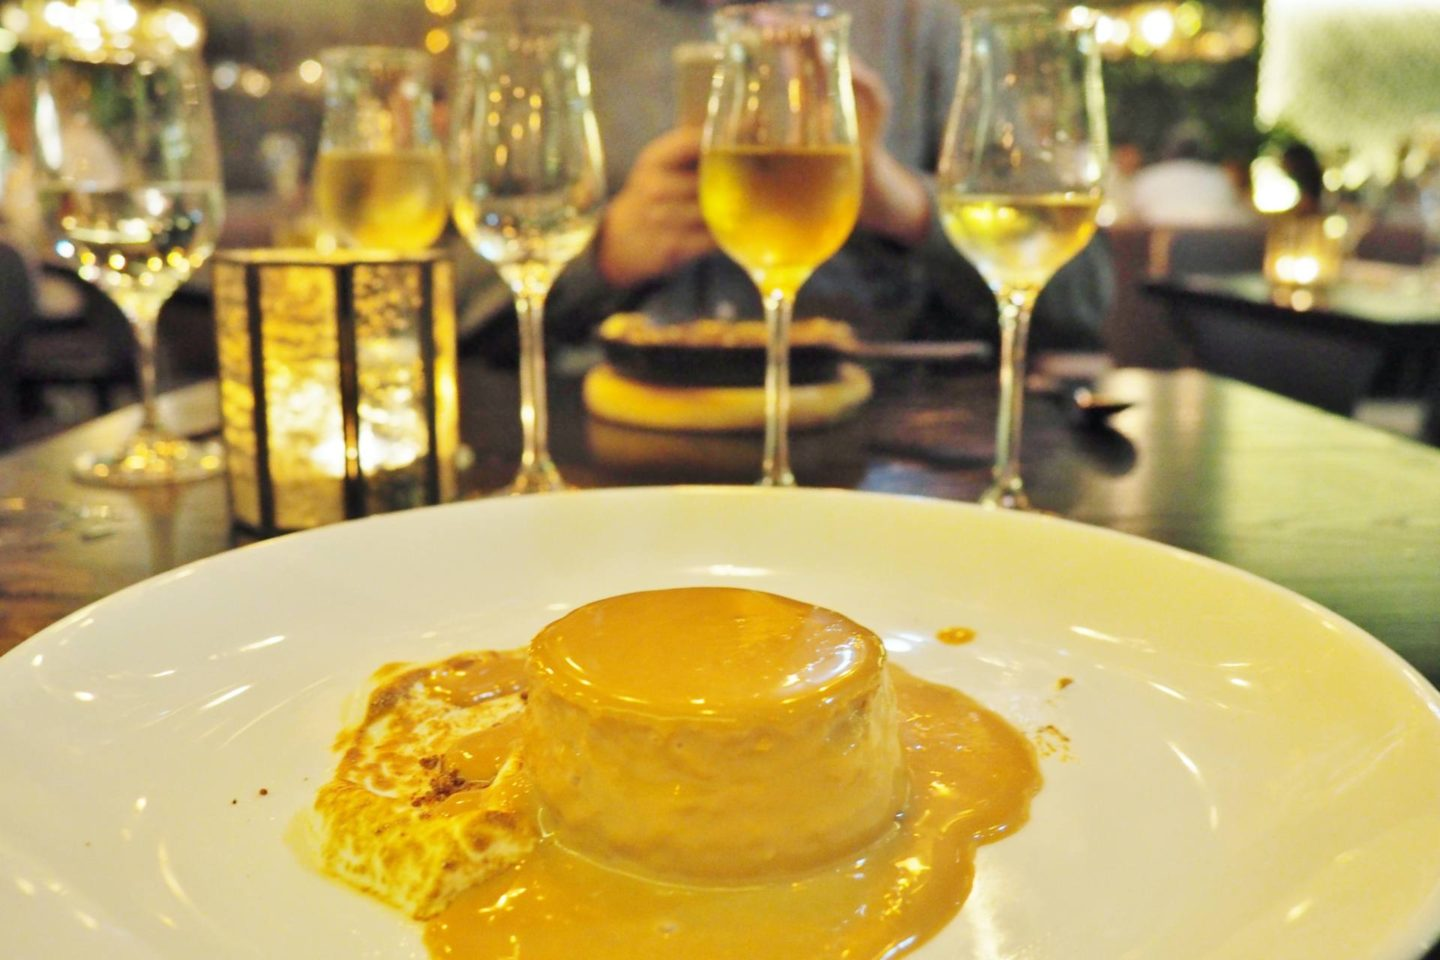 Emma Victoria Stokes Food Blogger Gaucho Birmingham Restaurant Review Dulce Le Leche Cheesecake